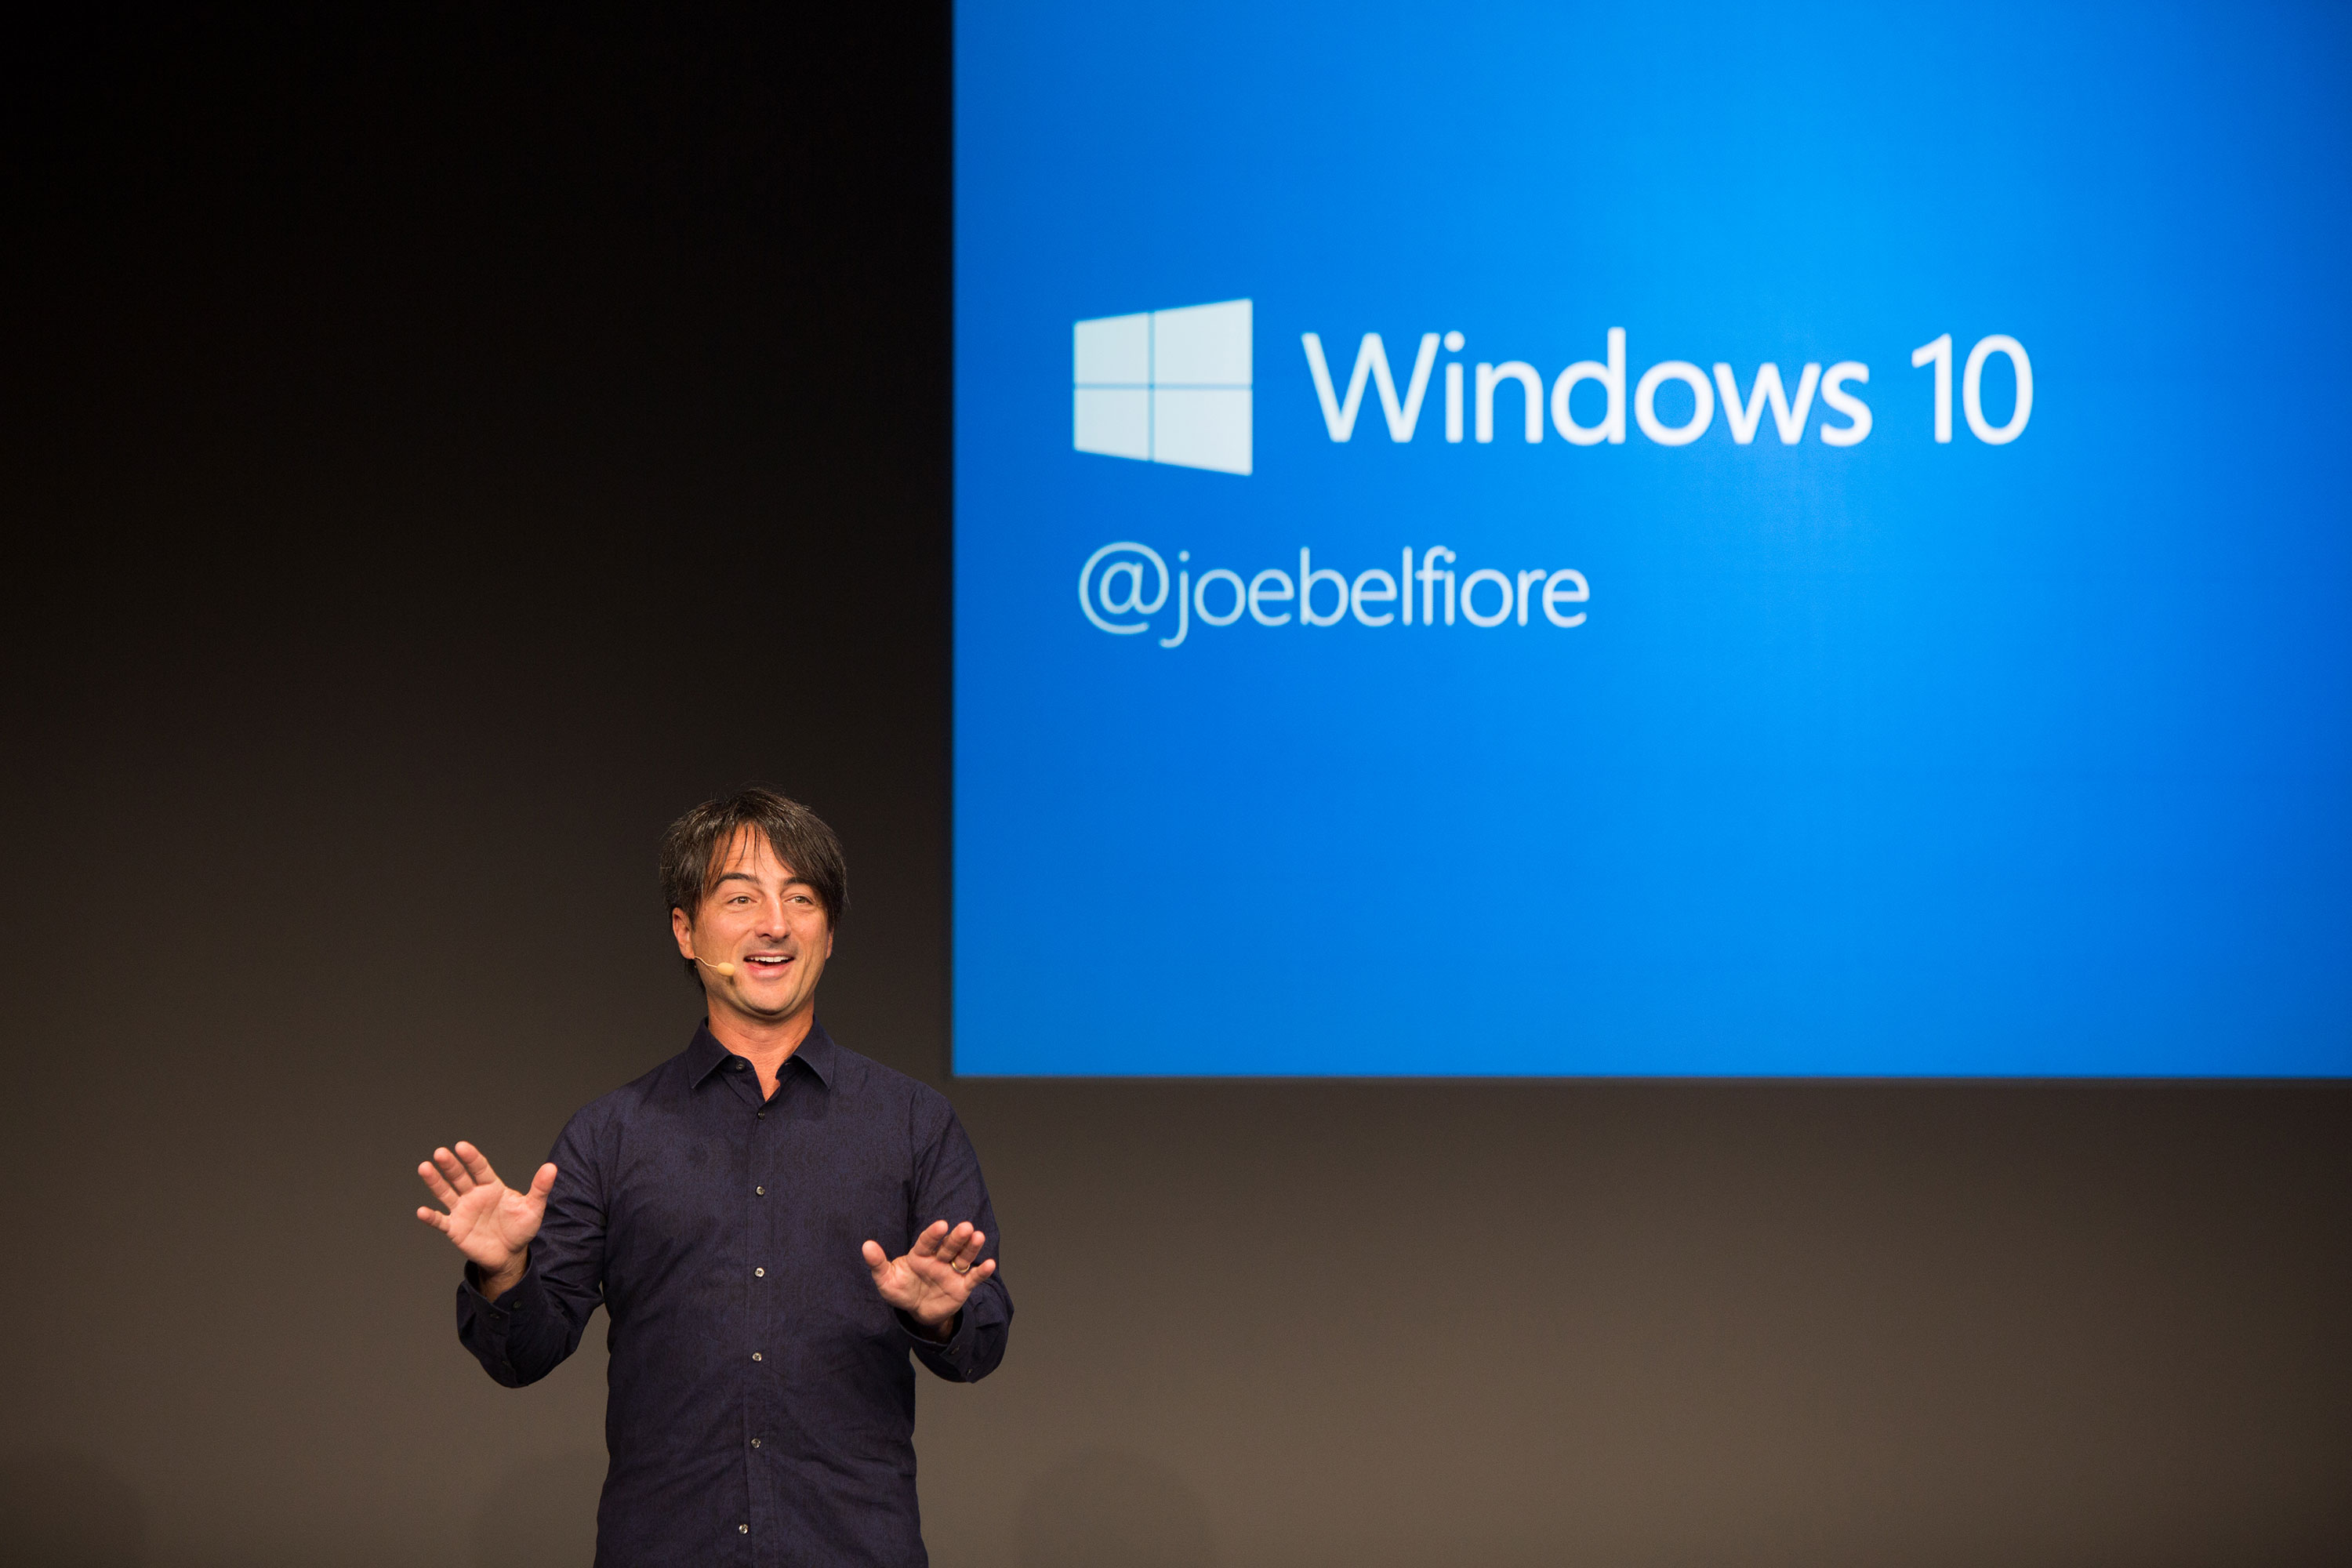 Joe fala sobre o Windows 10 Mobile